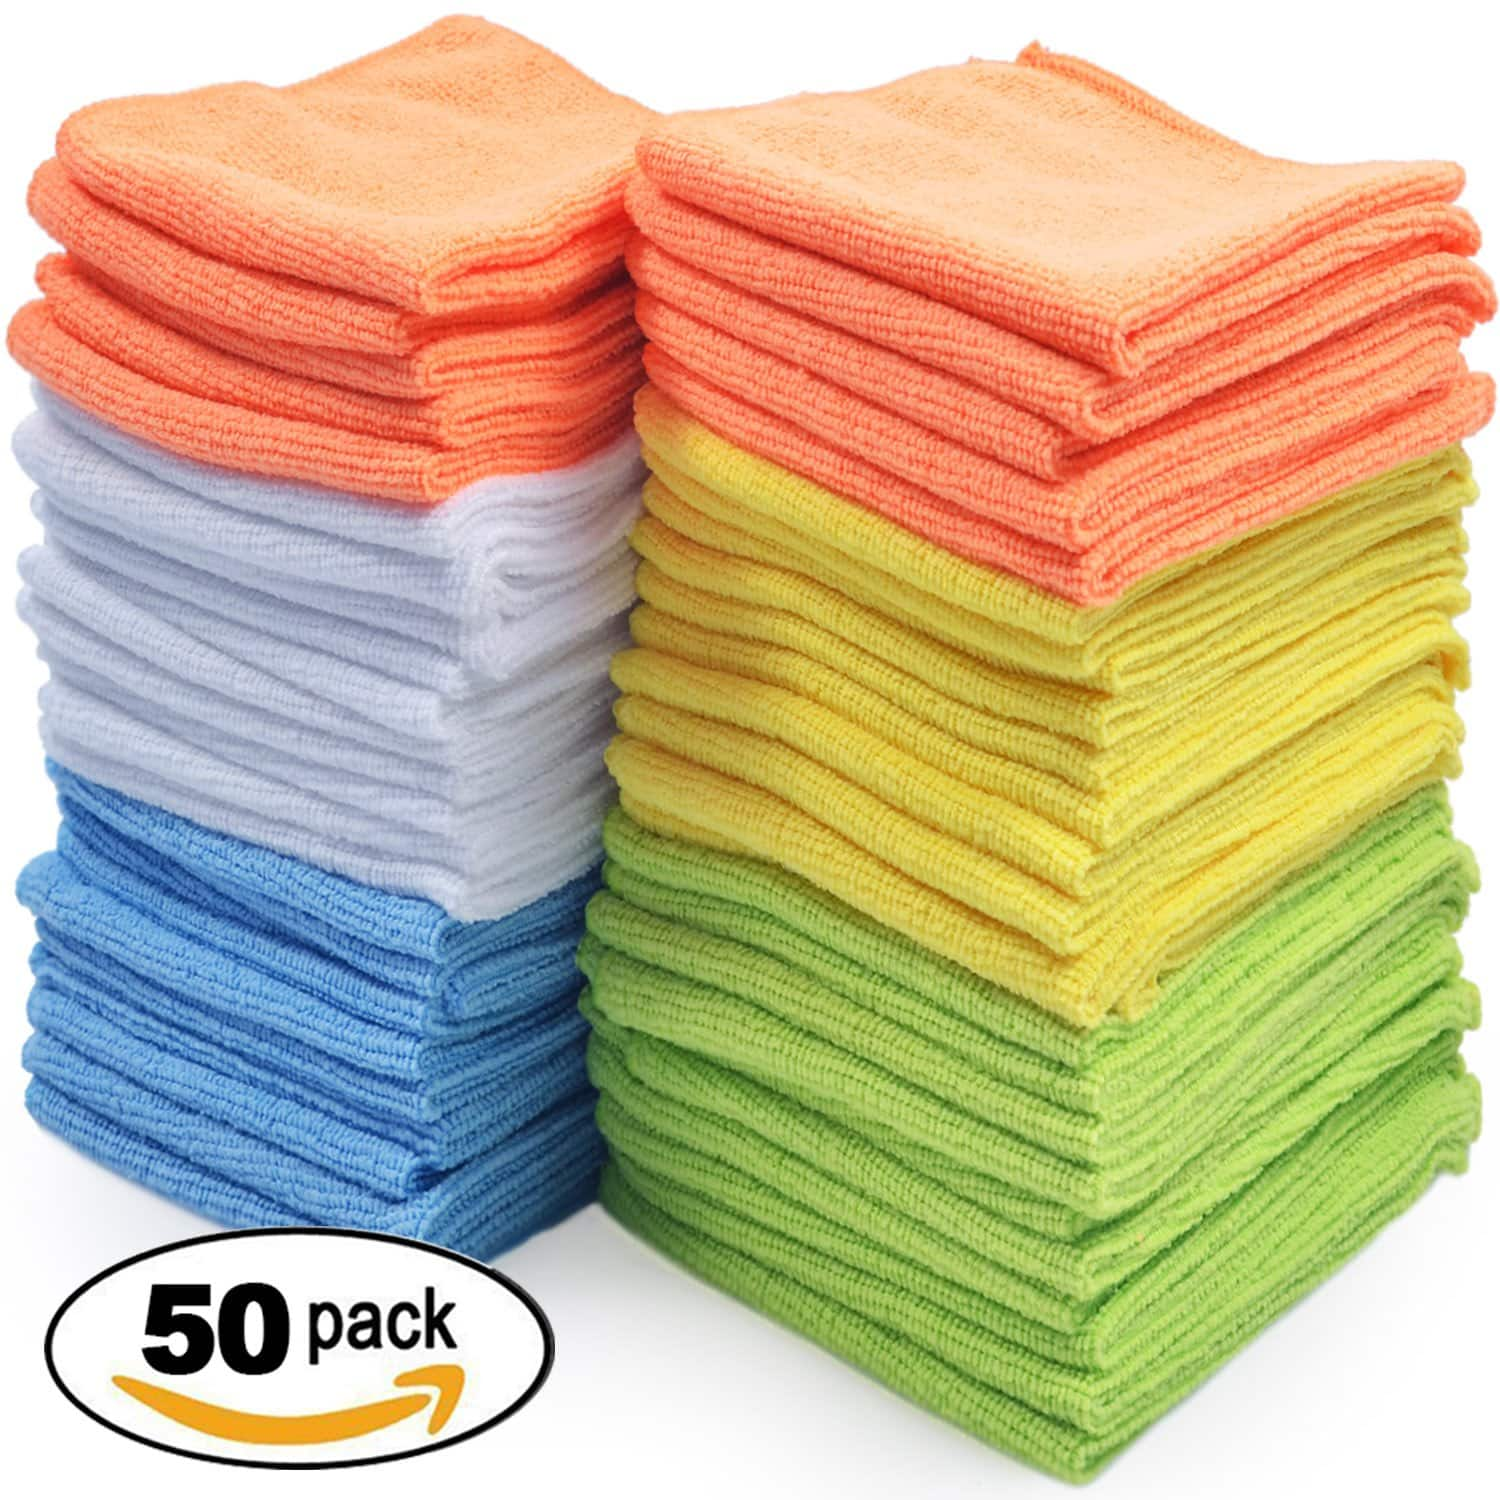 Microfiber Cleaning Cloths – Pack of 50 Towels (Time to clean the cars boys) $15.99